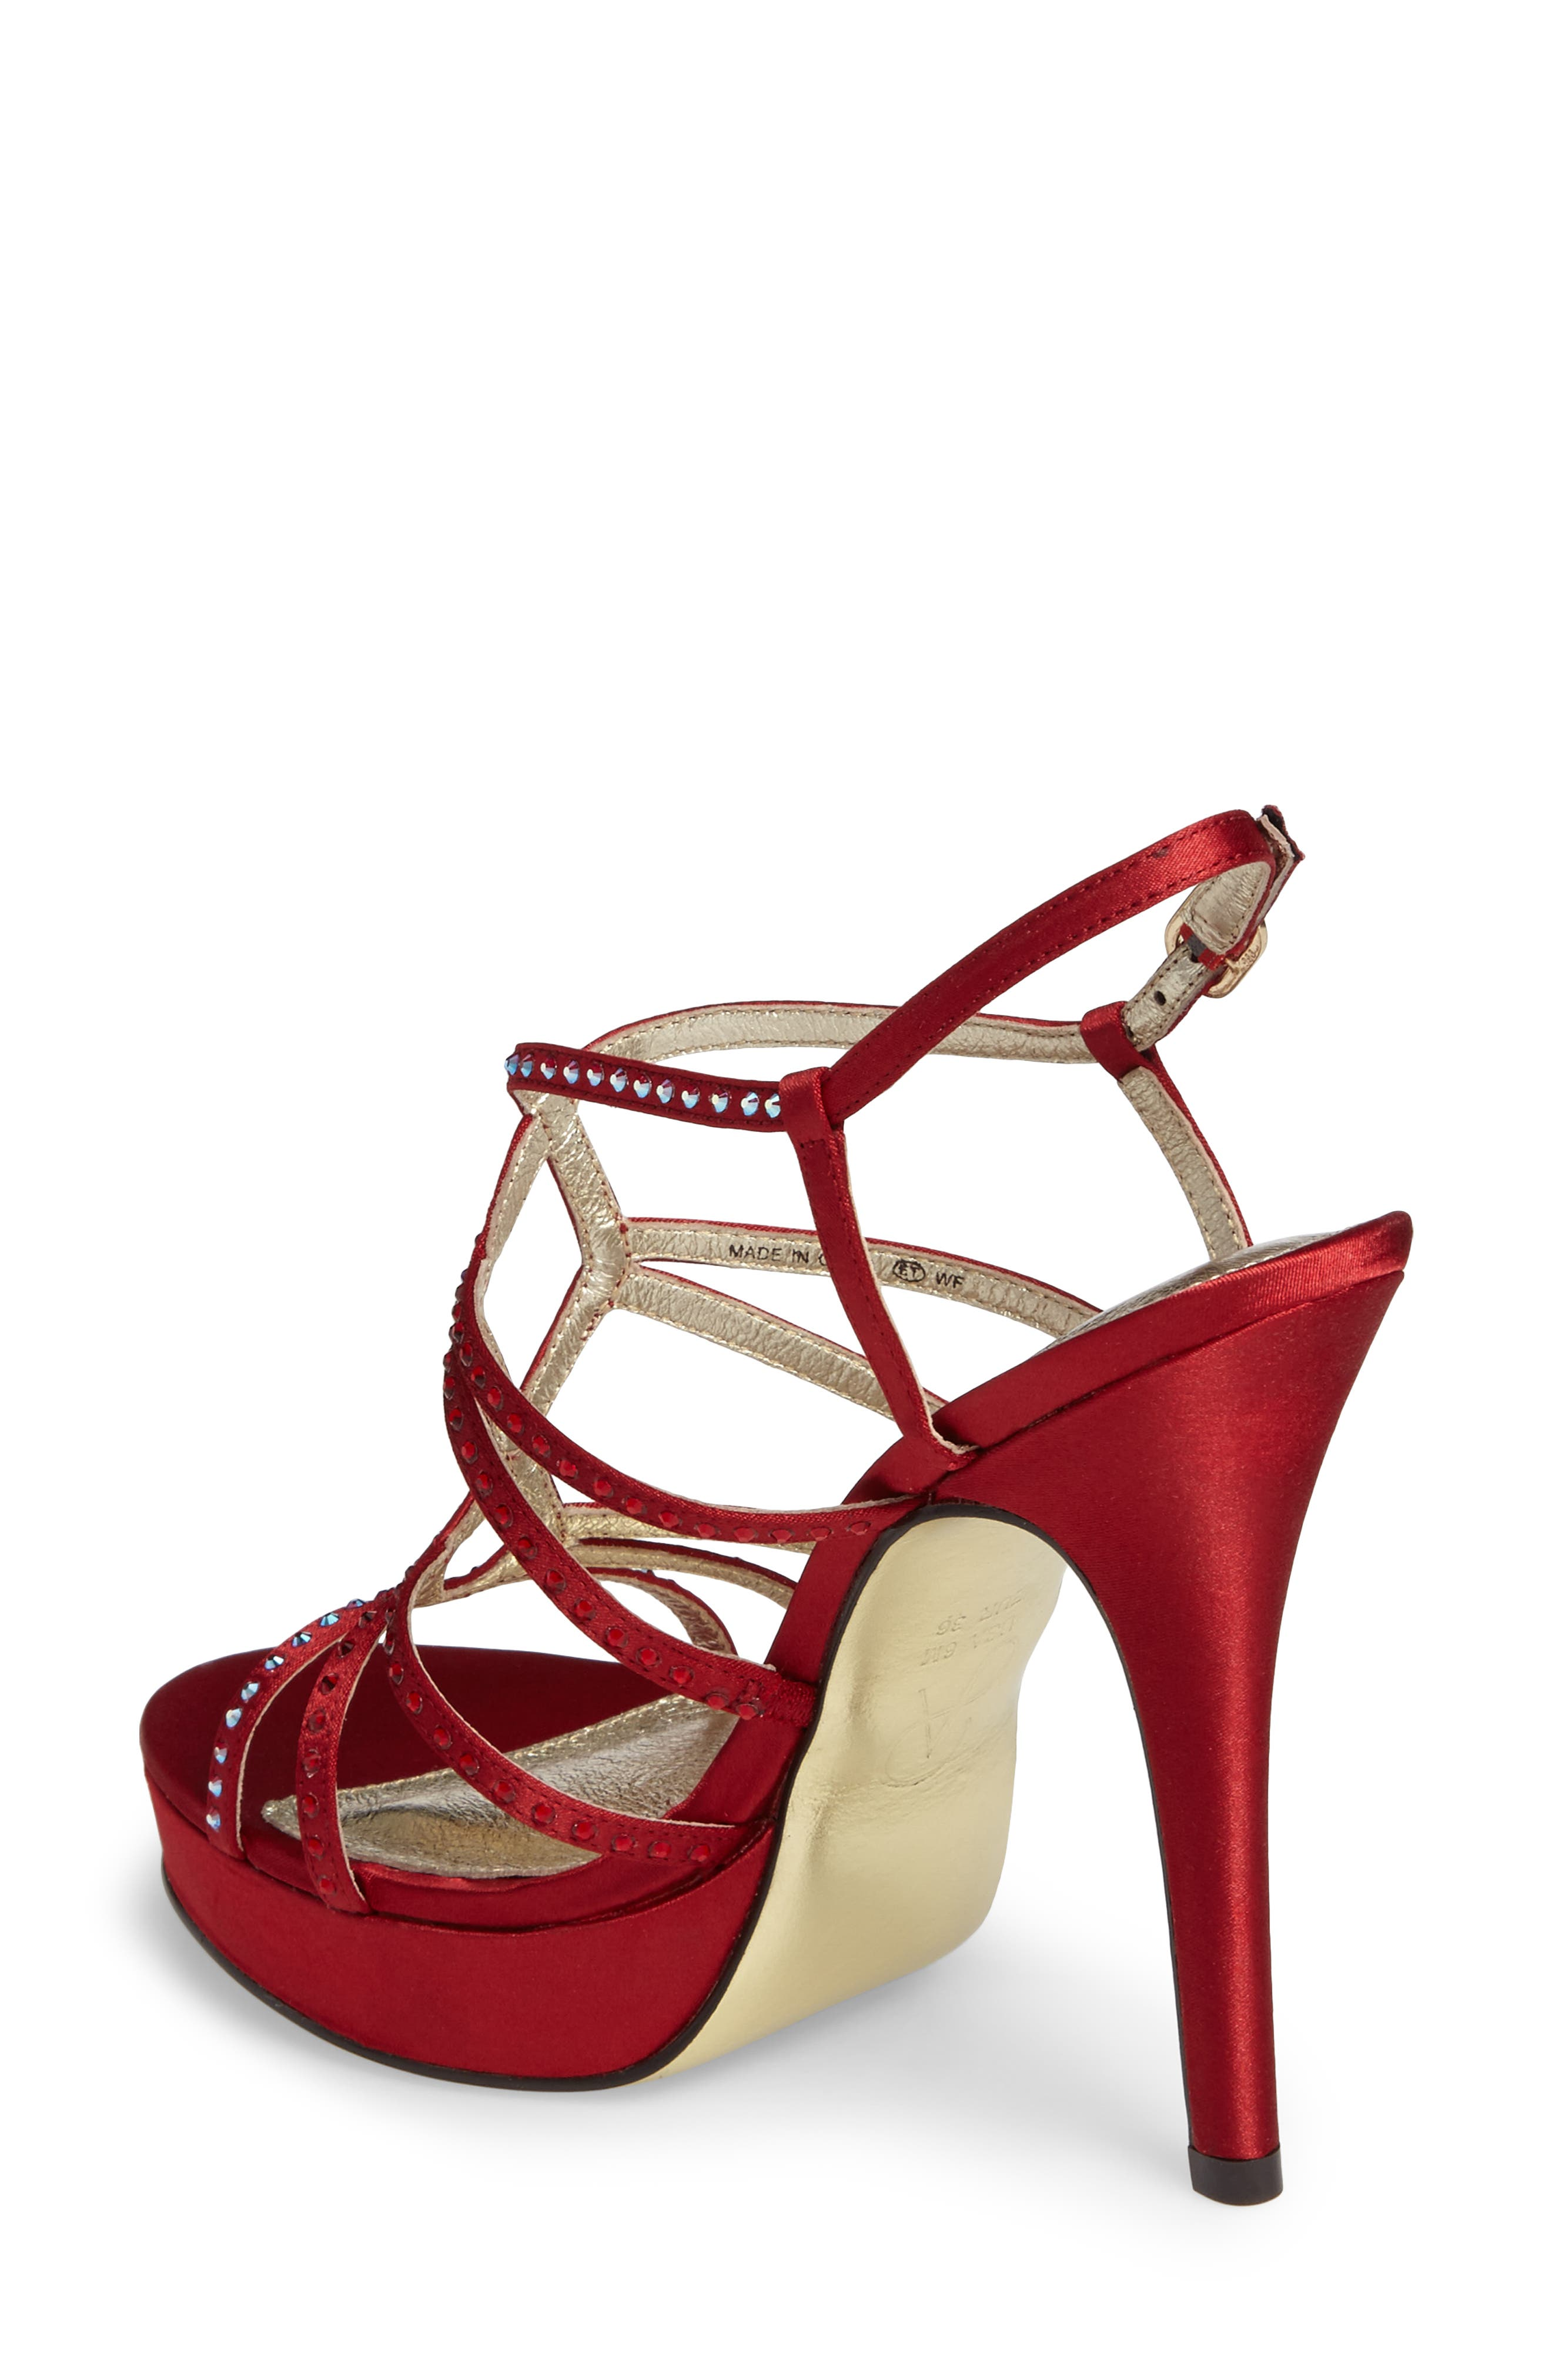 Miranda Embellished Platform Sandal,                             Alternate thumbnail 2, color,                             Red Classic Satin